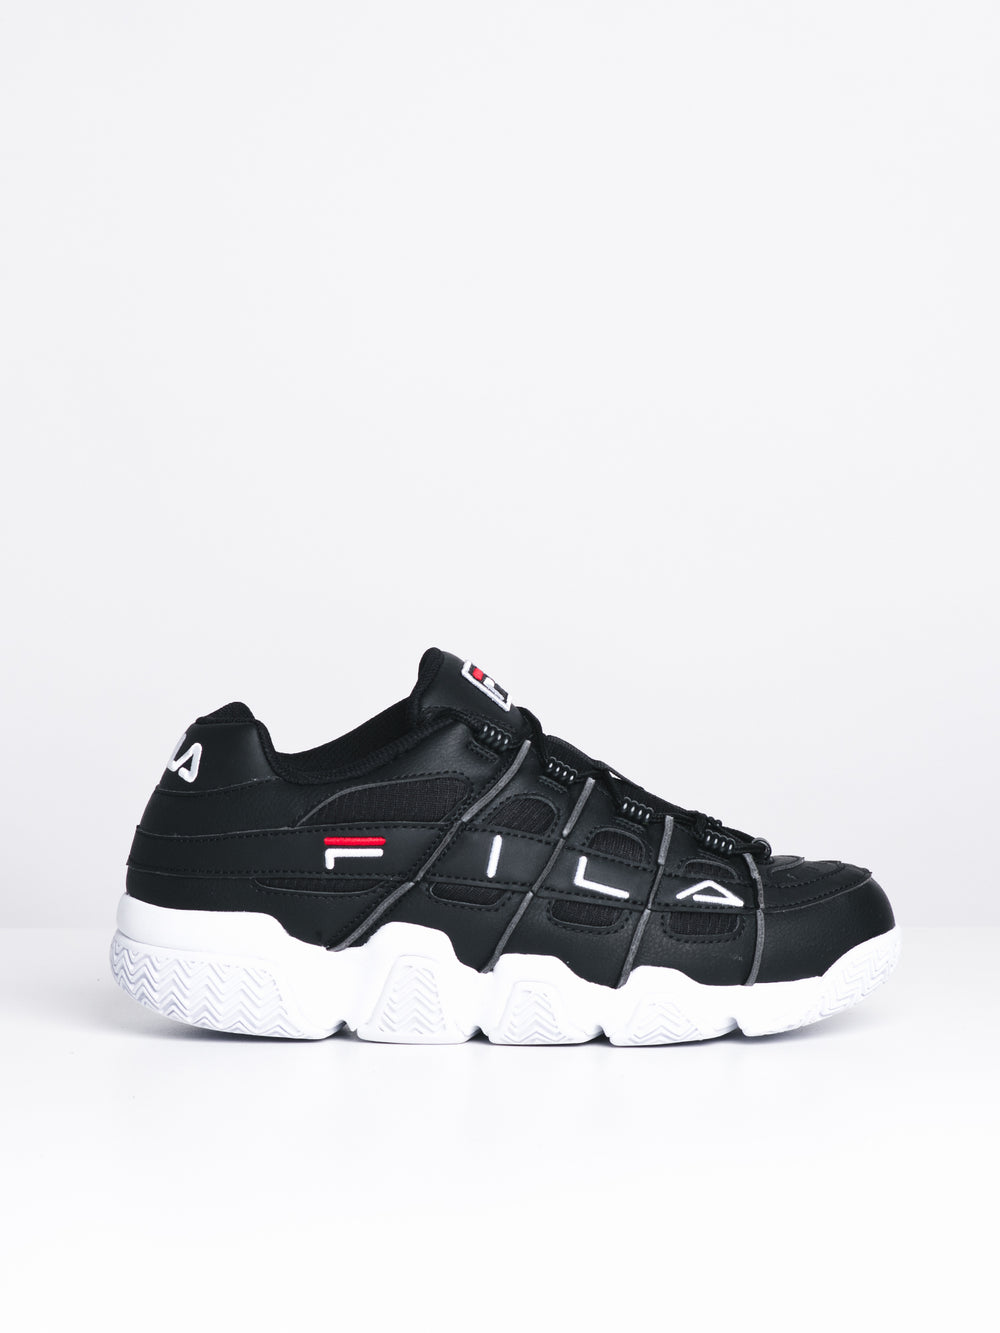 MENS BARRICADE XT LO - BLACK/RED